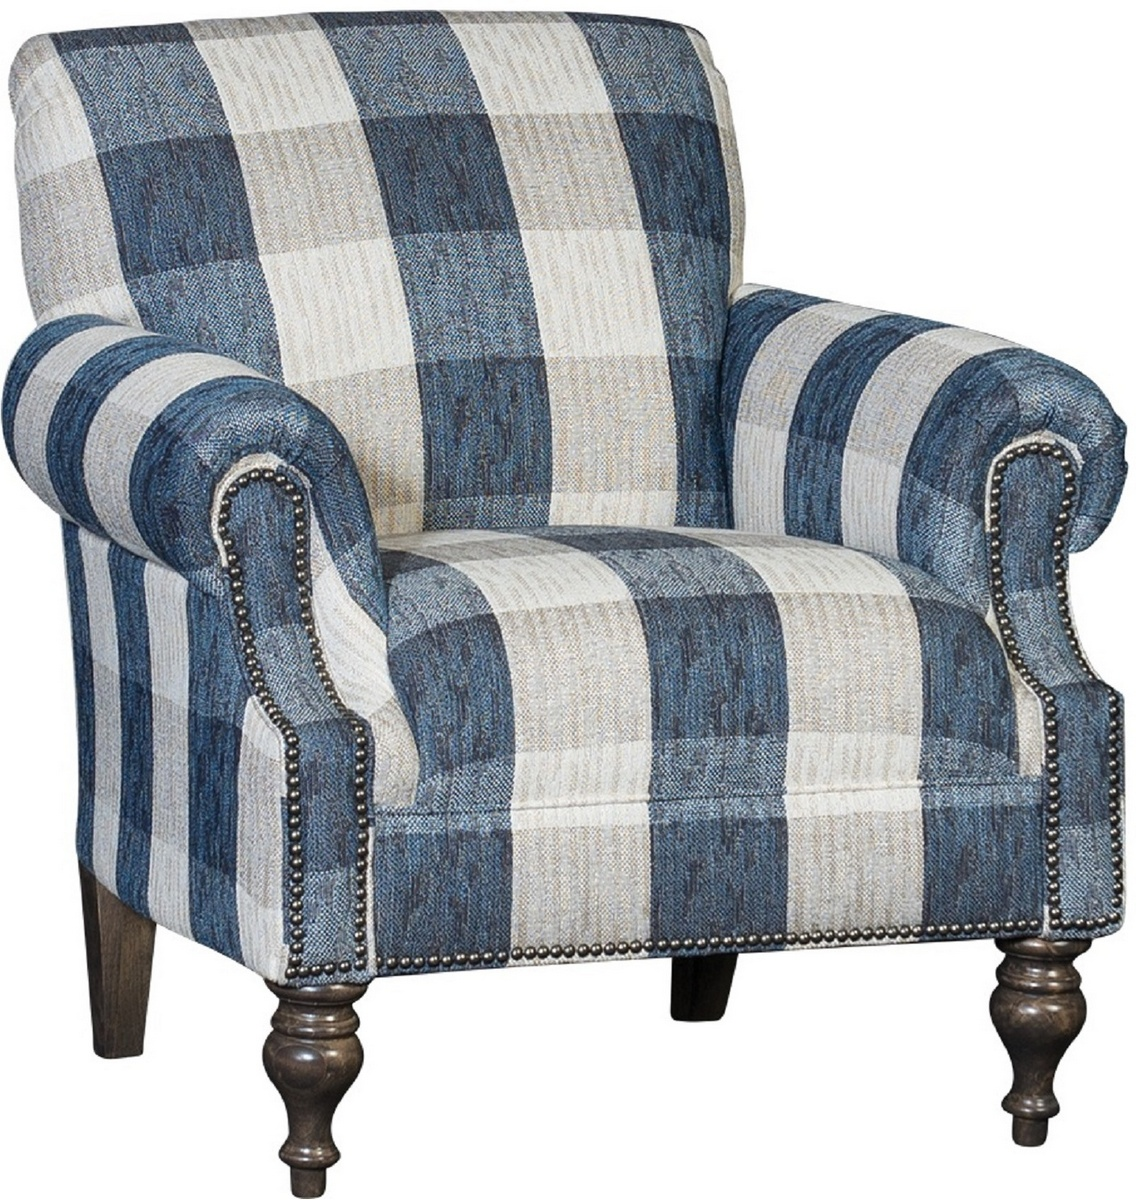 Chelsea Home Gannon Chair Jodat Indigo